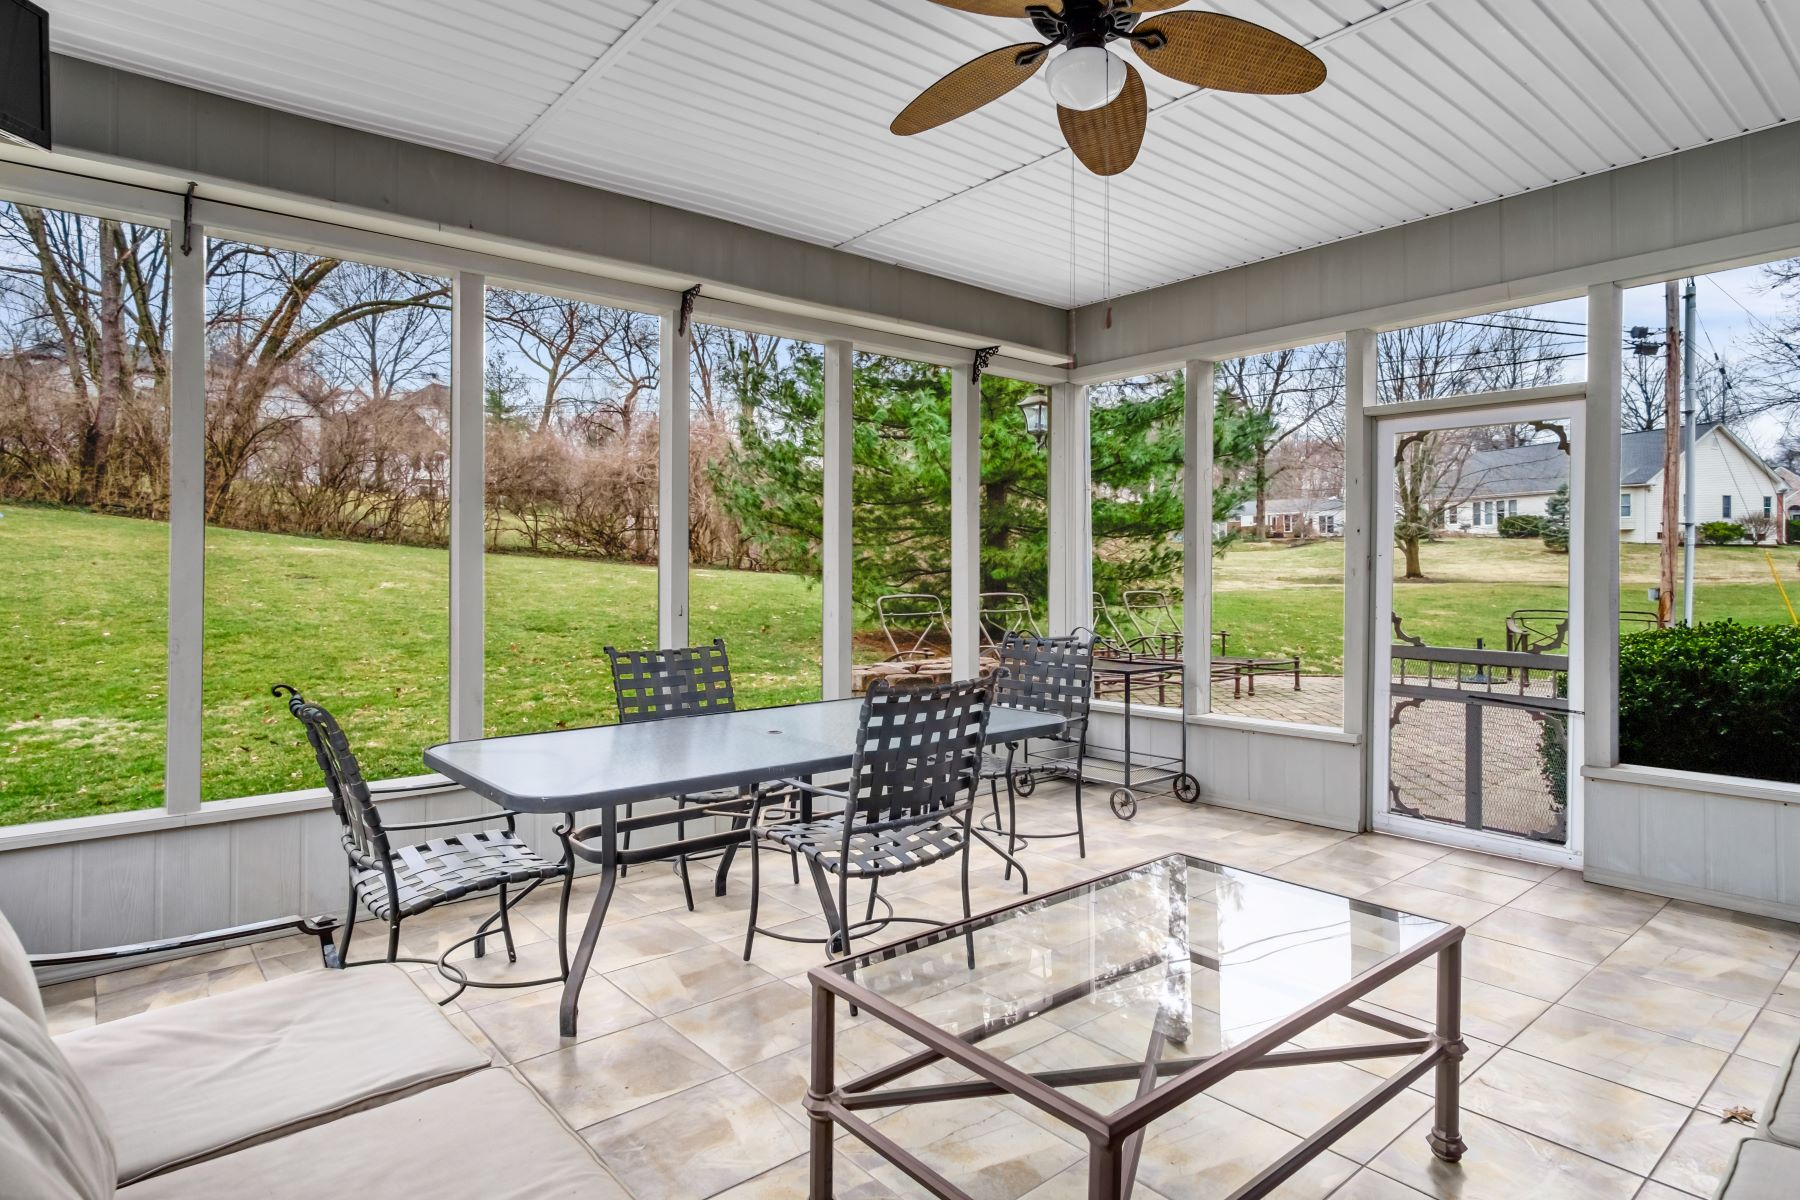 Additional photo for property listing at A Special Home with Bountiful Features! 12 Bon Hills Drive Olivette, Missouri 63132 United States